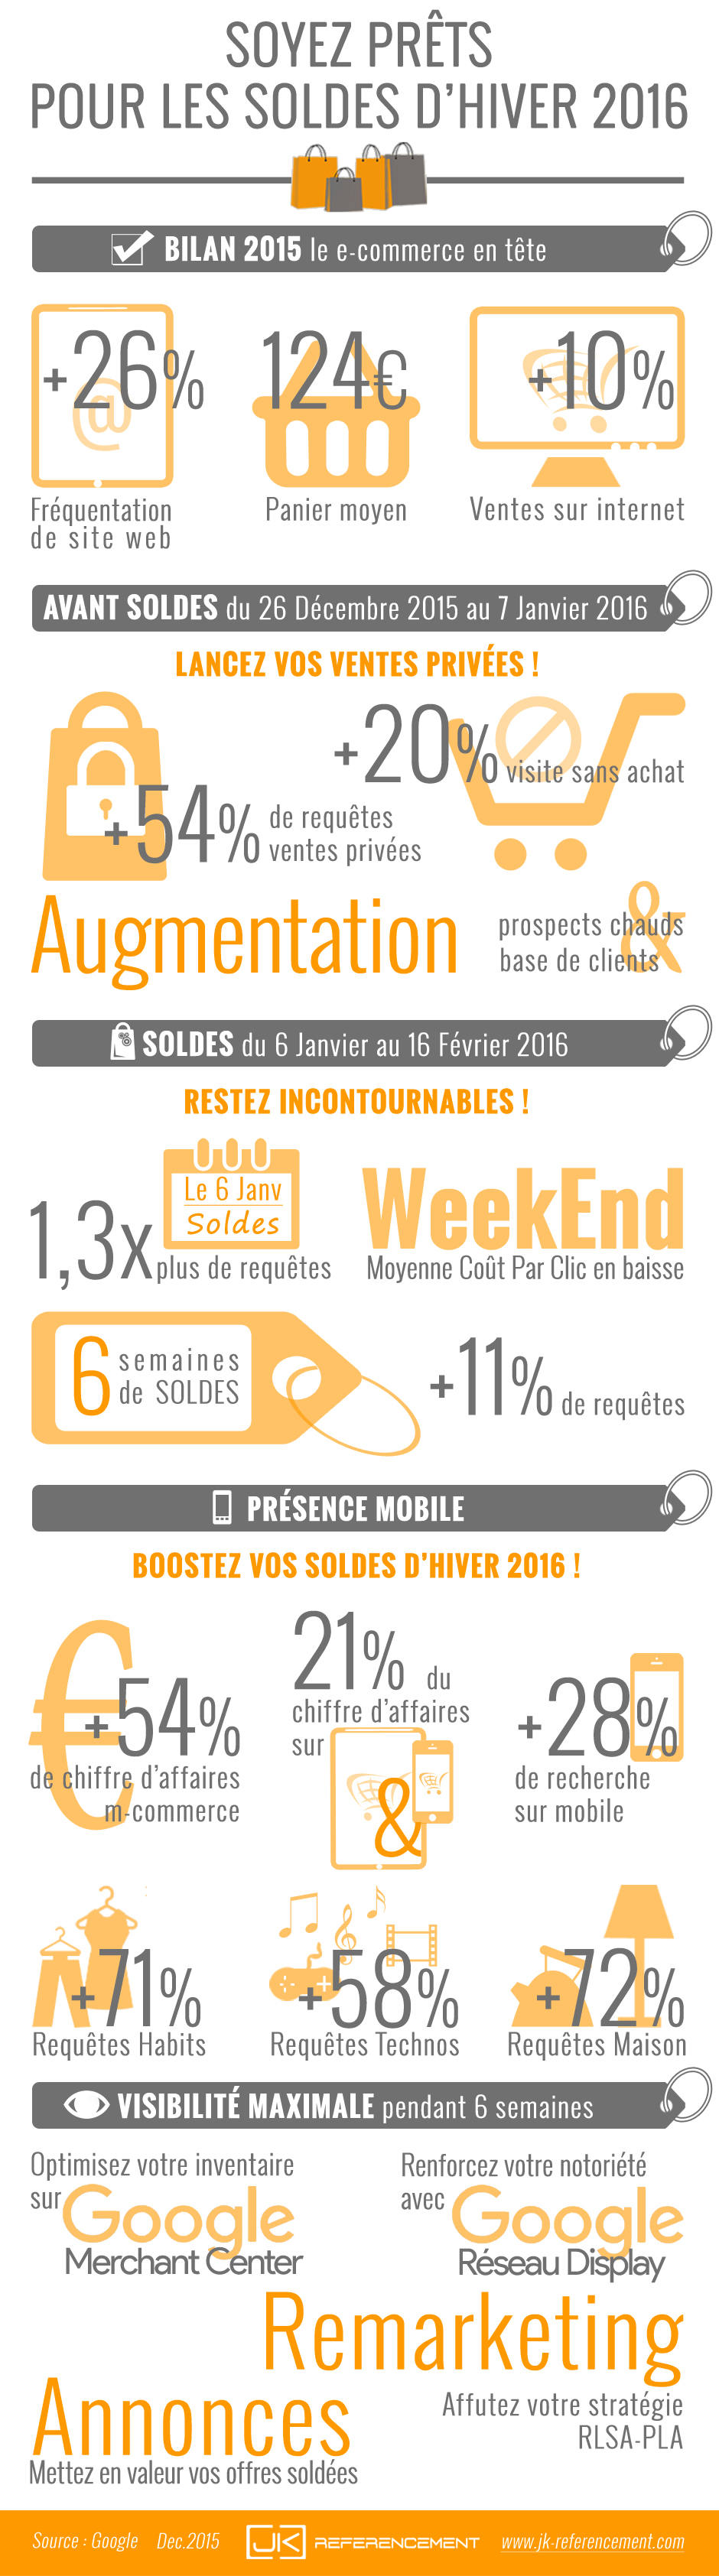 infographie-soldes-hiver-2015